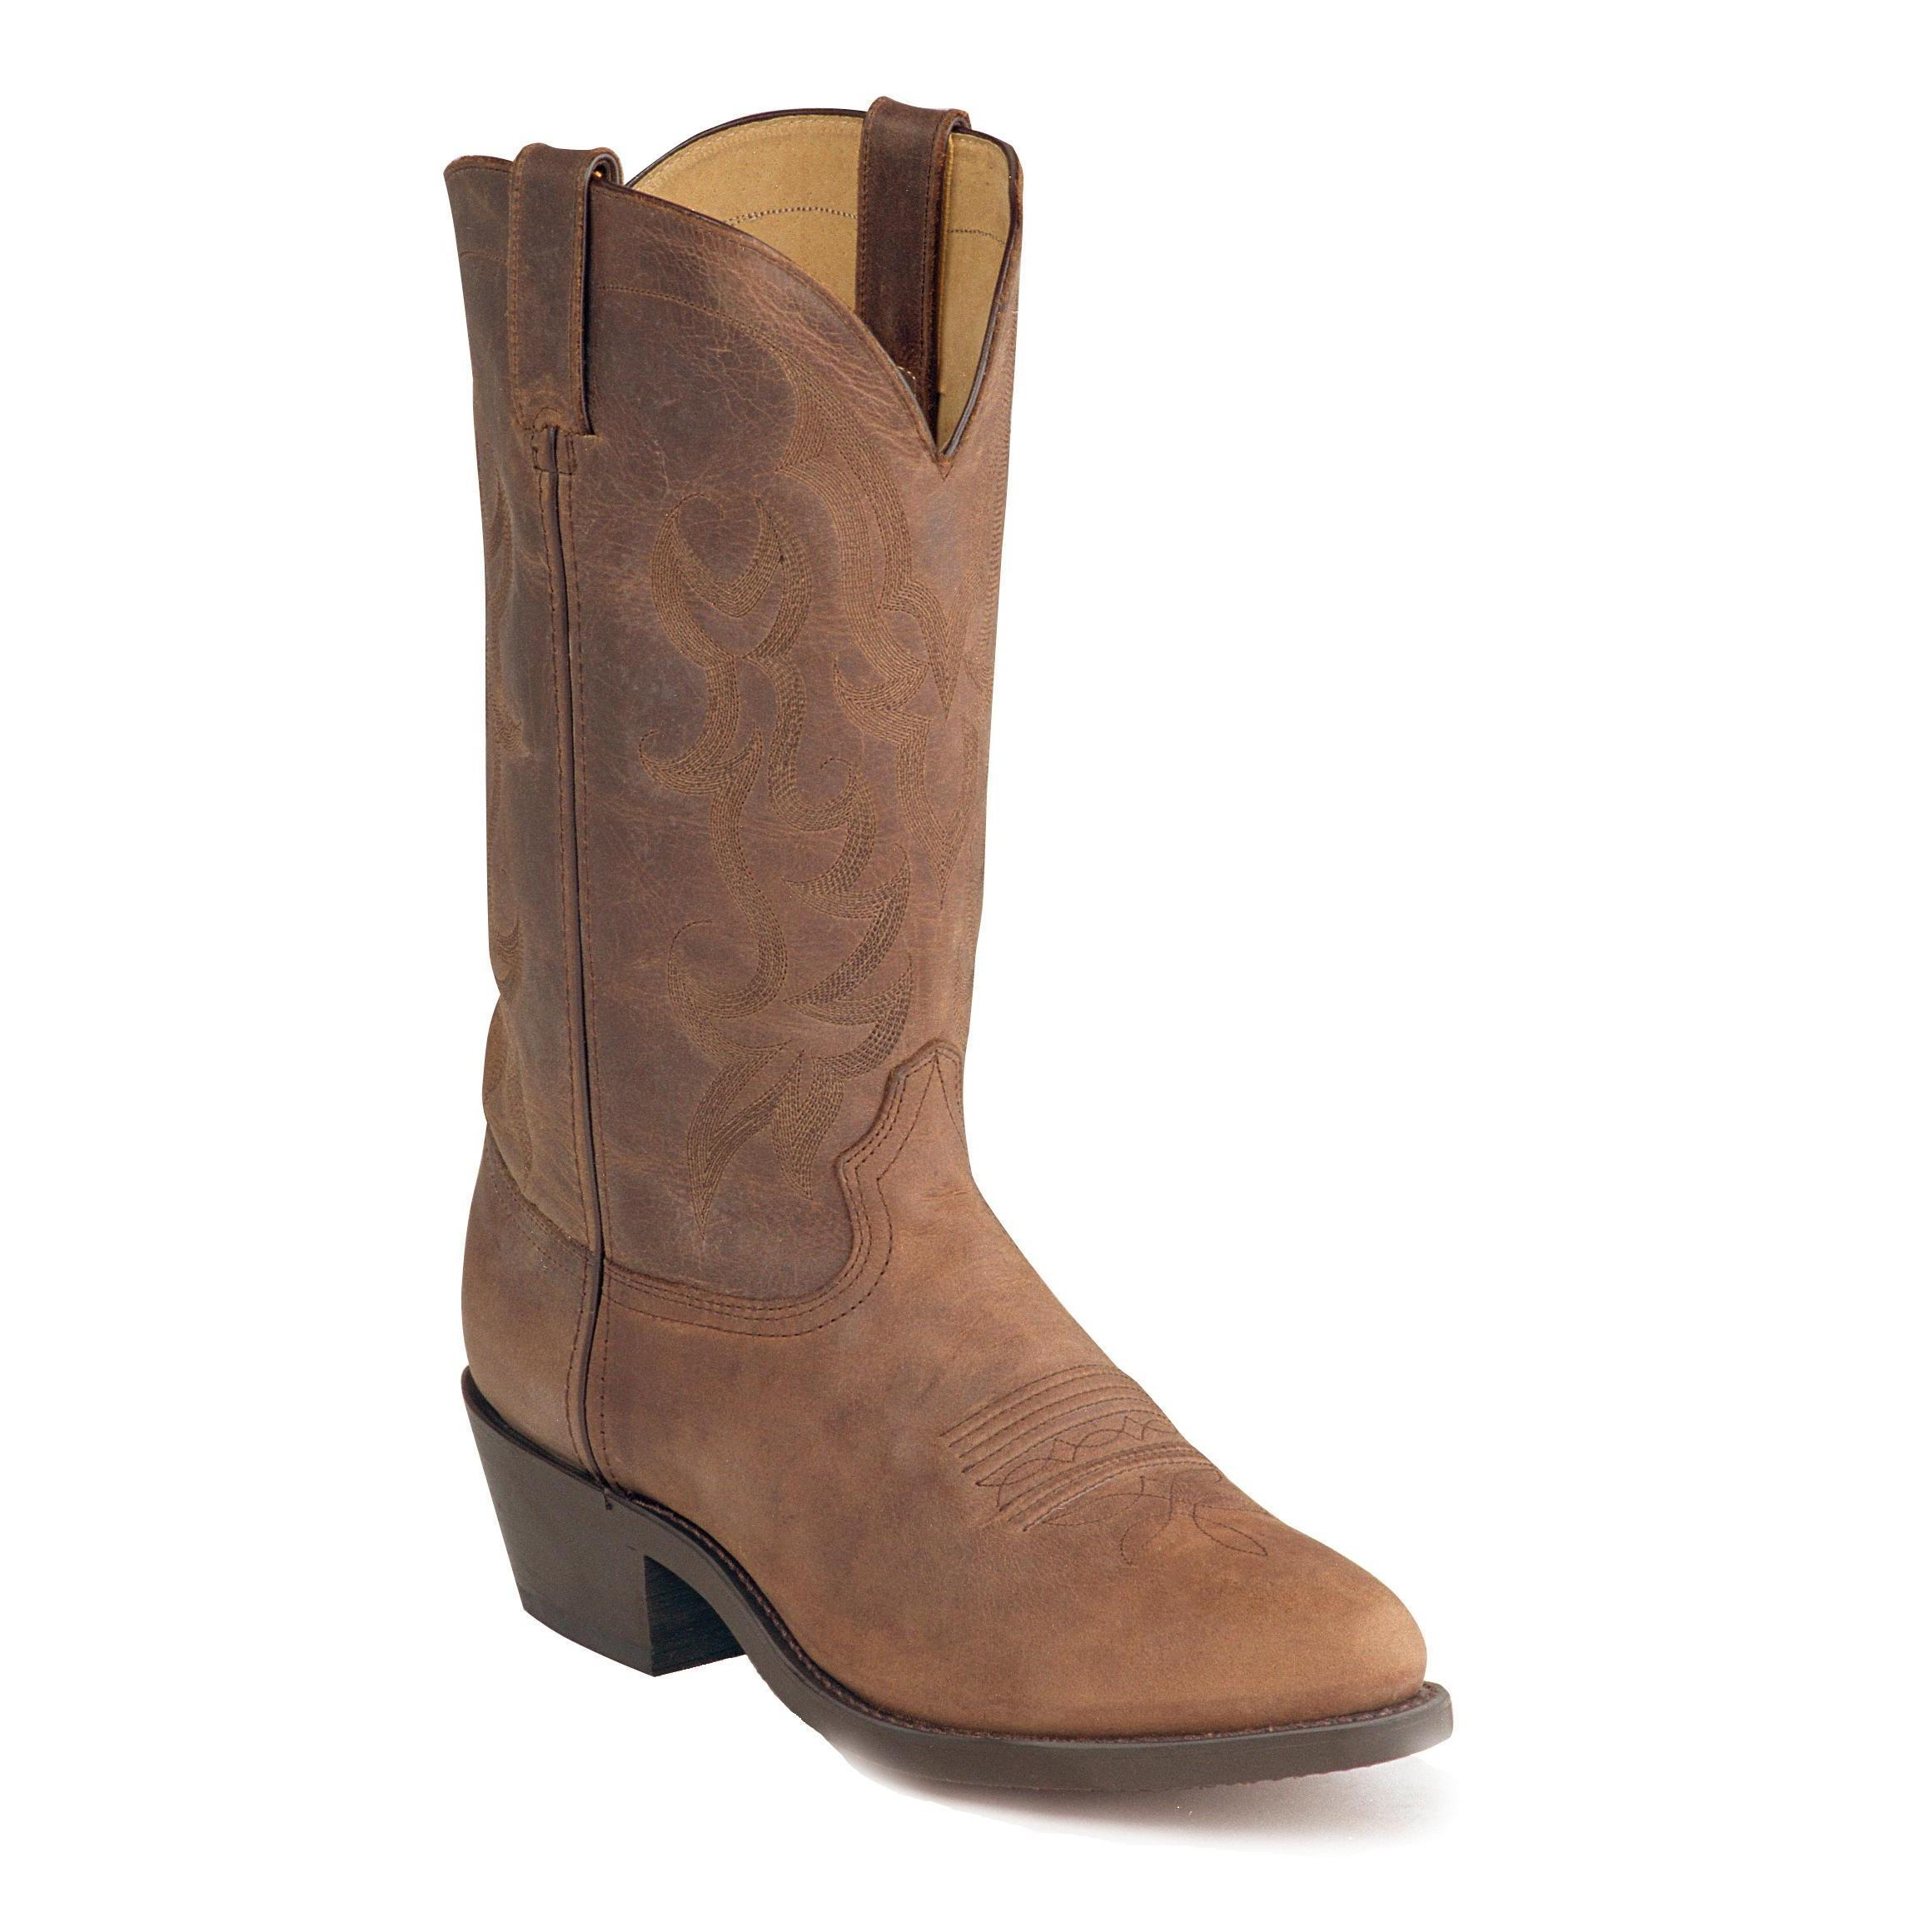 Score the perfect pair of women's boots at Famous Footwear! With favorite colors like brown, black, and grey and materials like leather and suede, the perfect pair of women's boots is waiting for you.